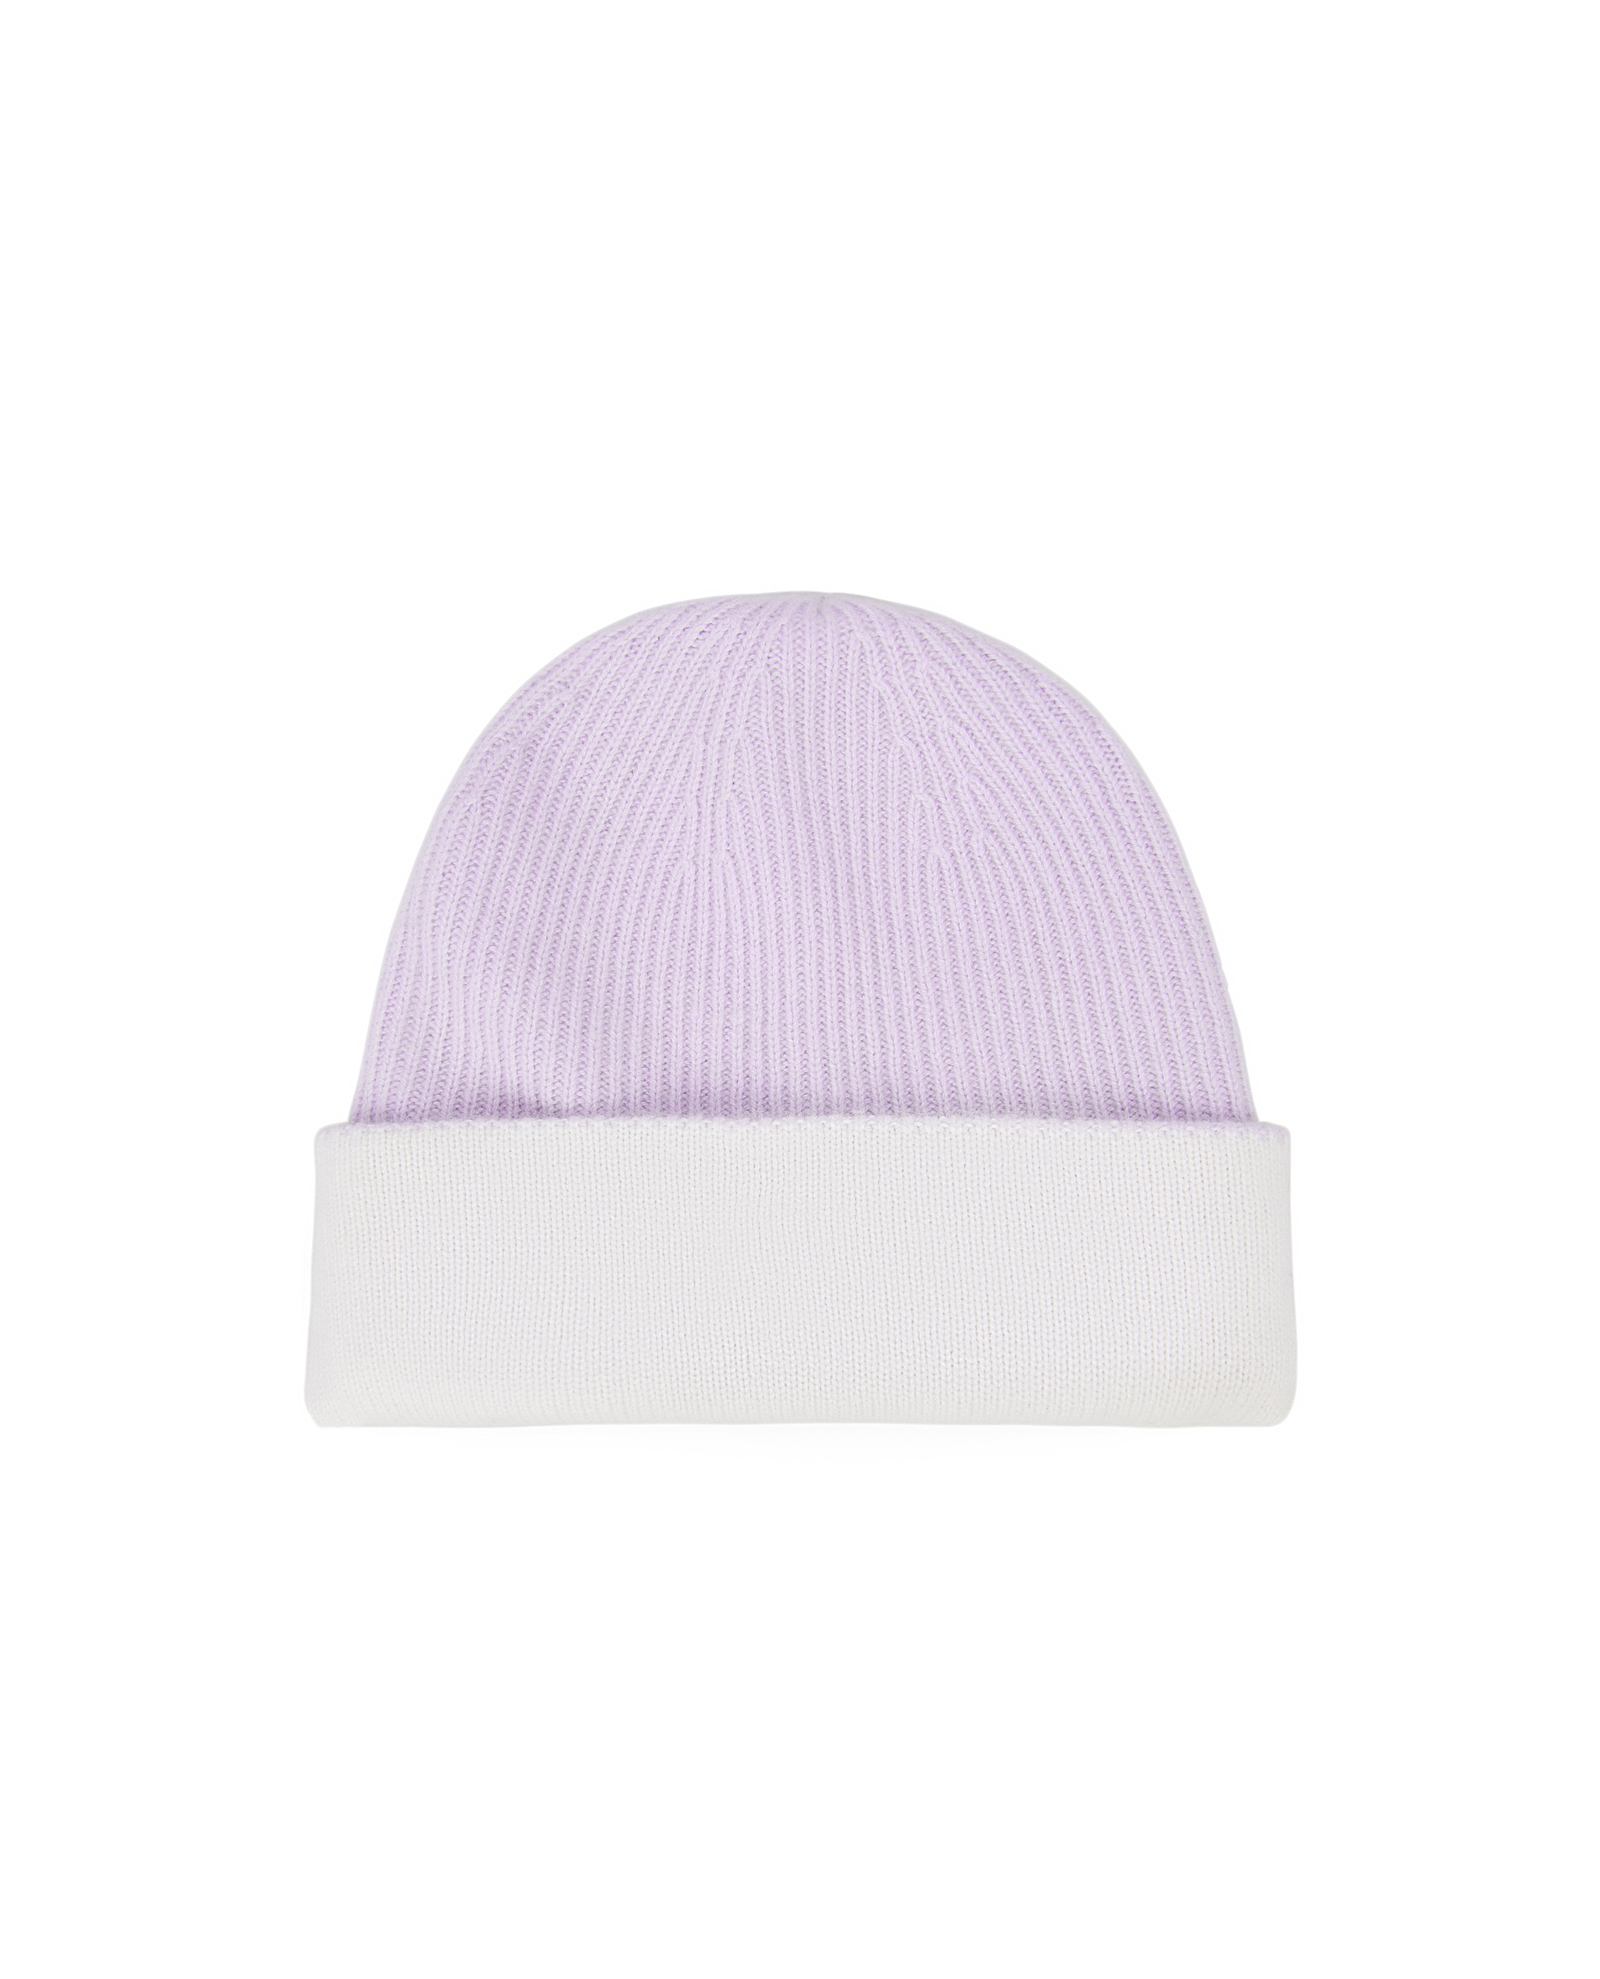 Reversible Beanie by Intermix